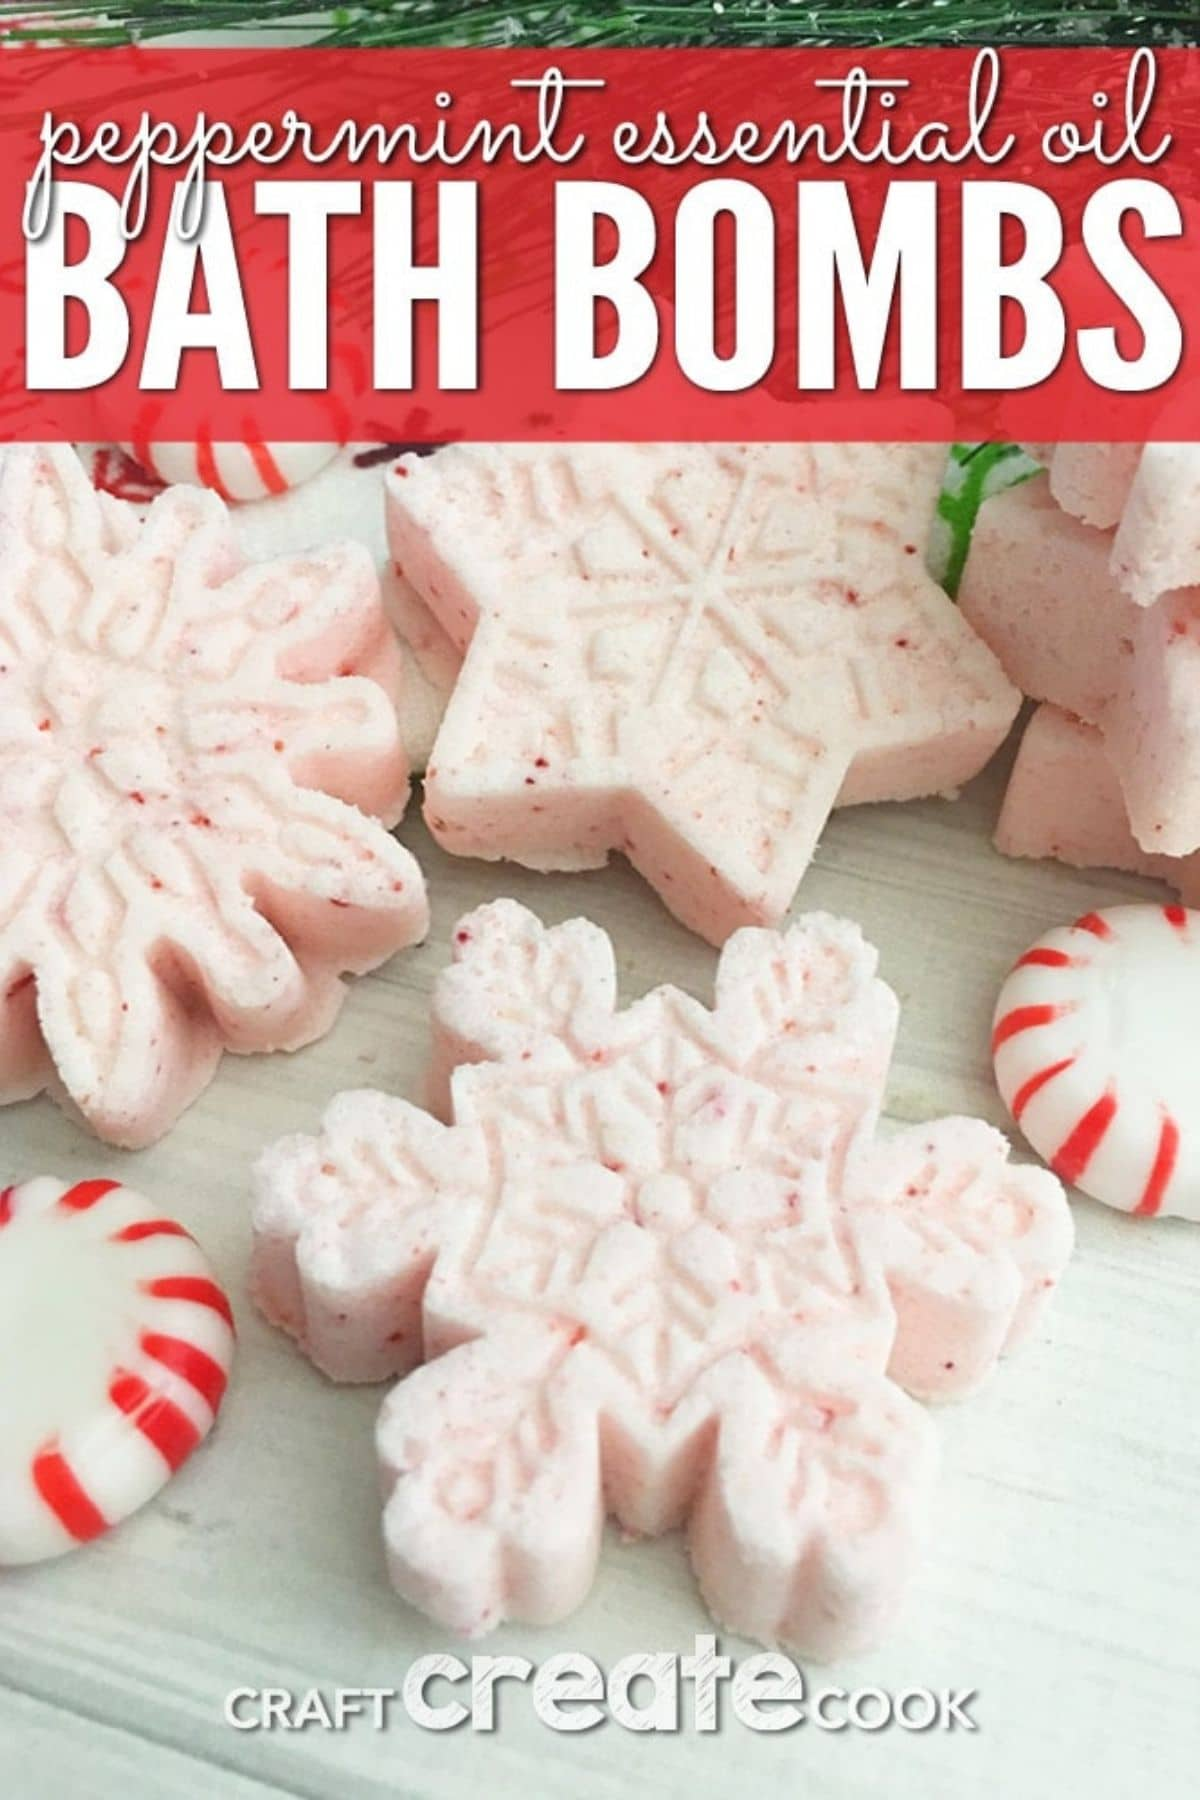 Snowflake shaped bath bombs